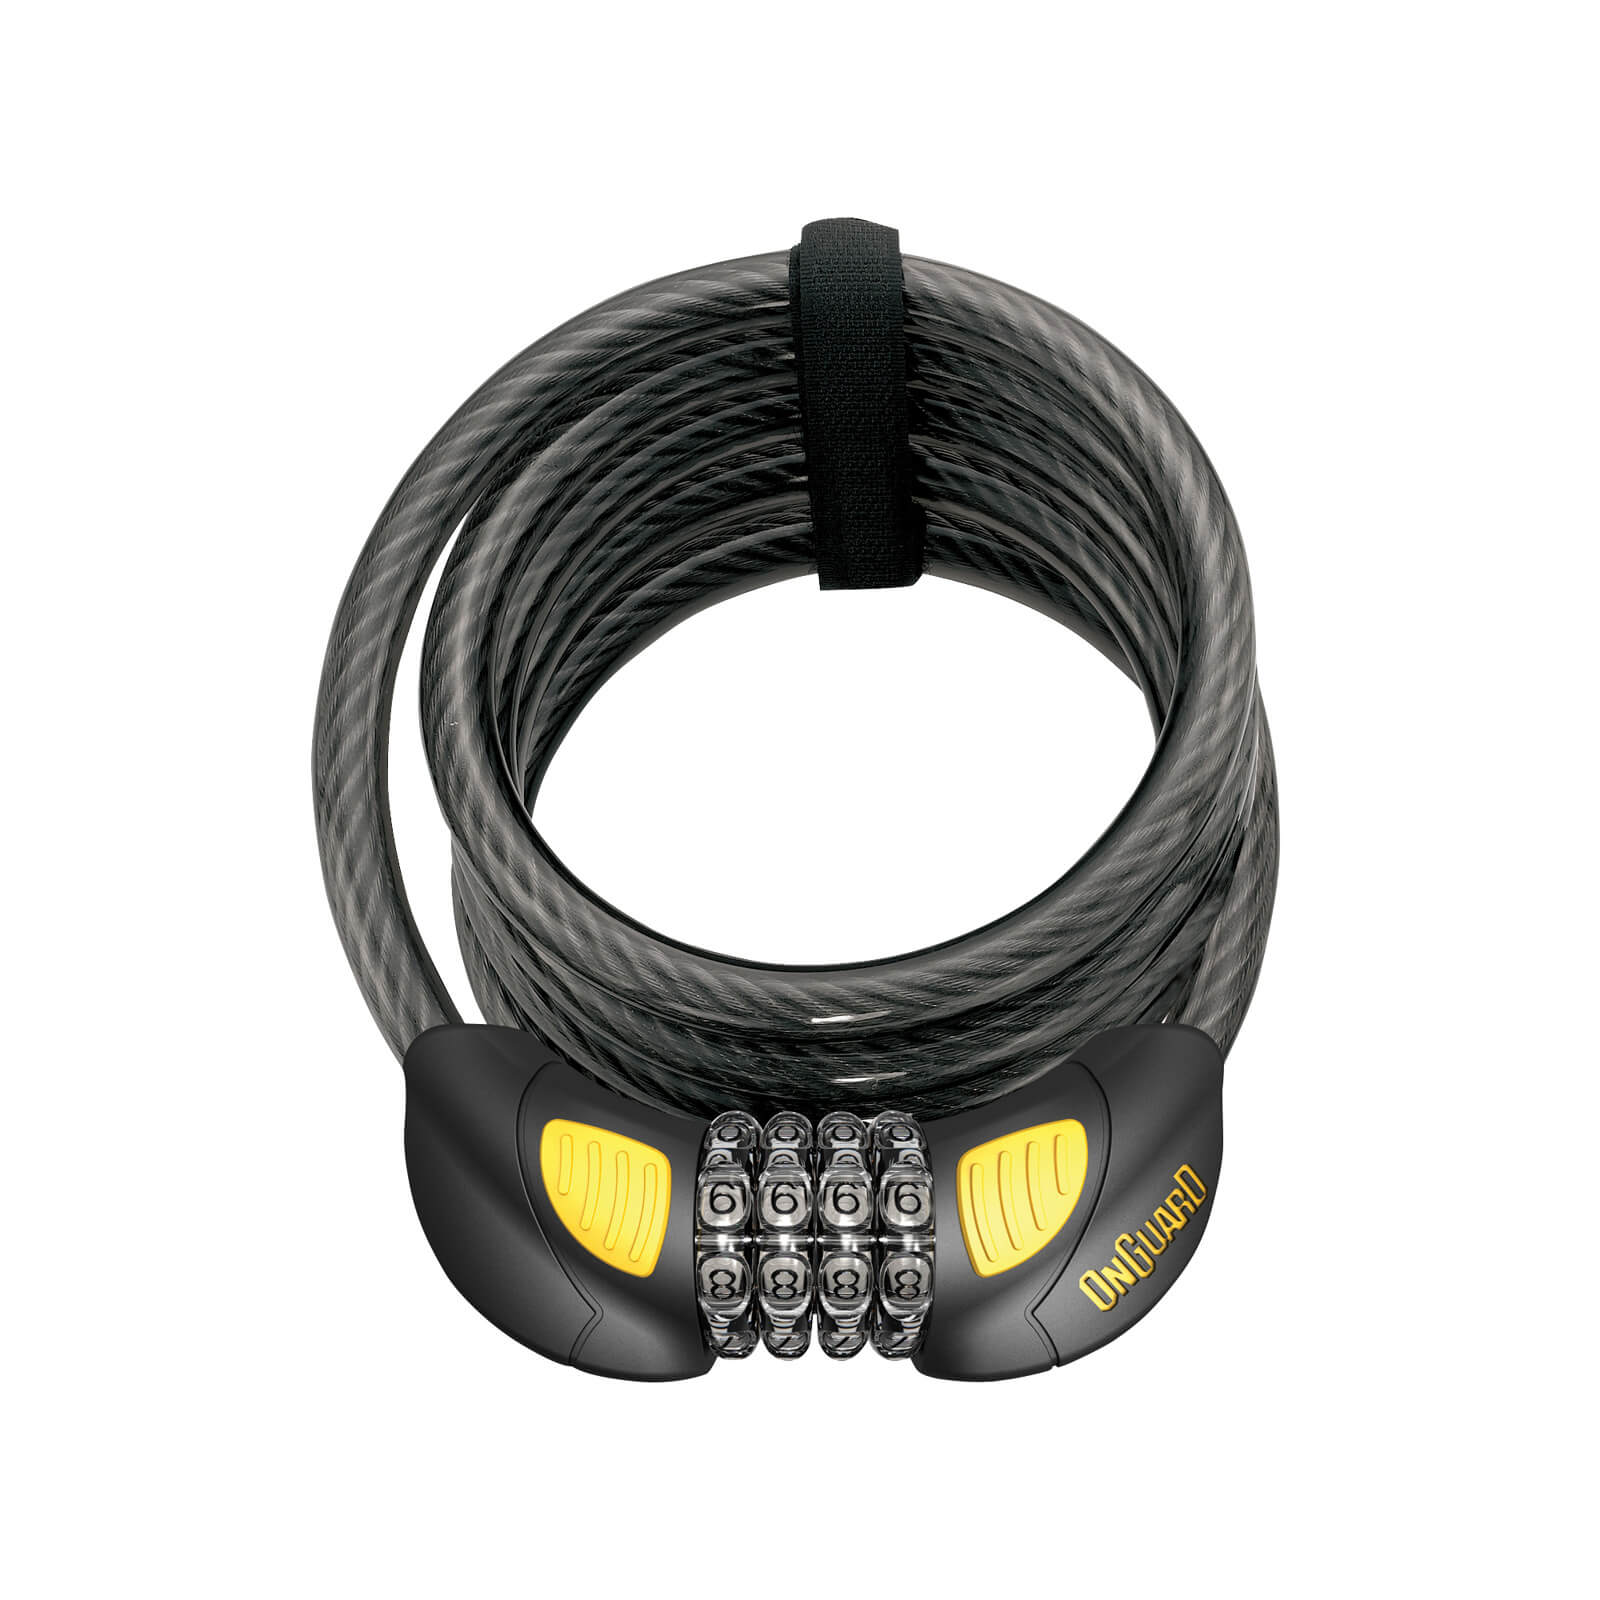 OnGuard Doberman LED Combo Coil Lock - 185cm x 12mm